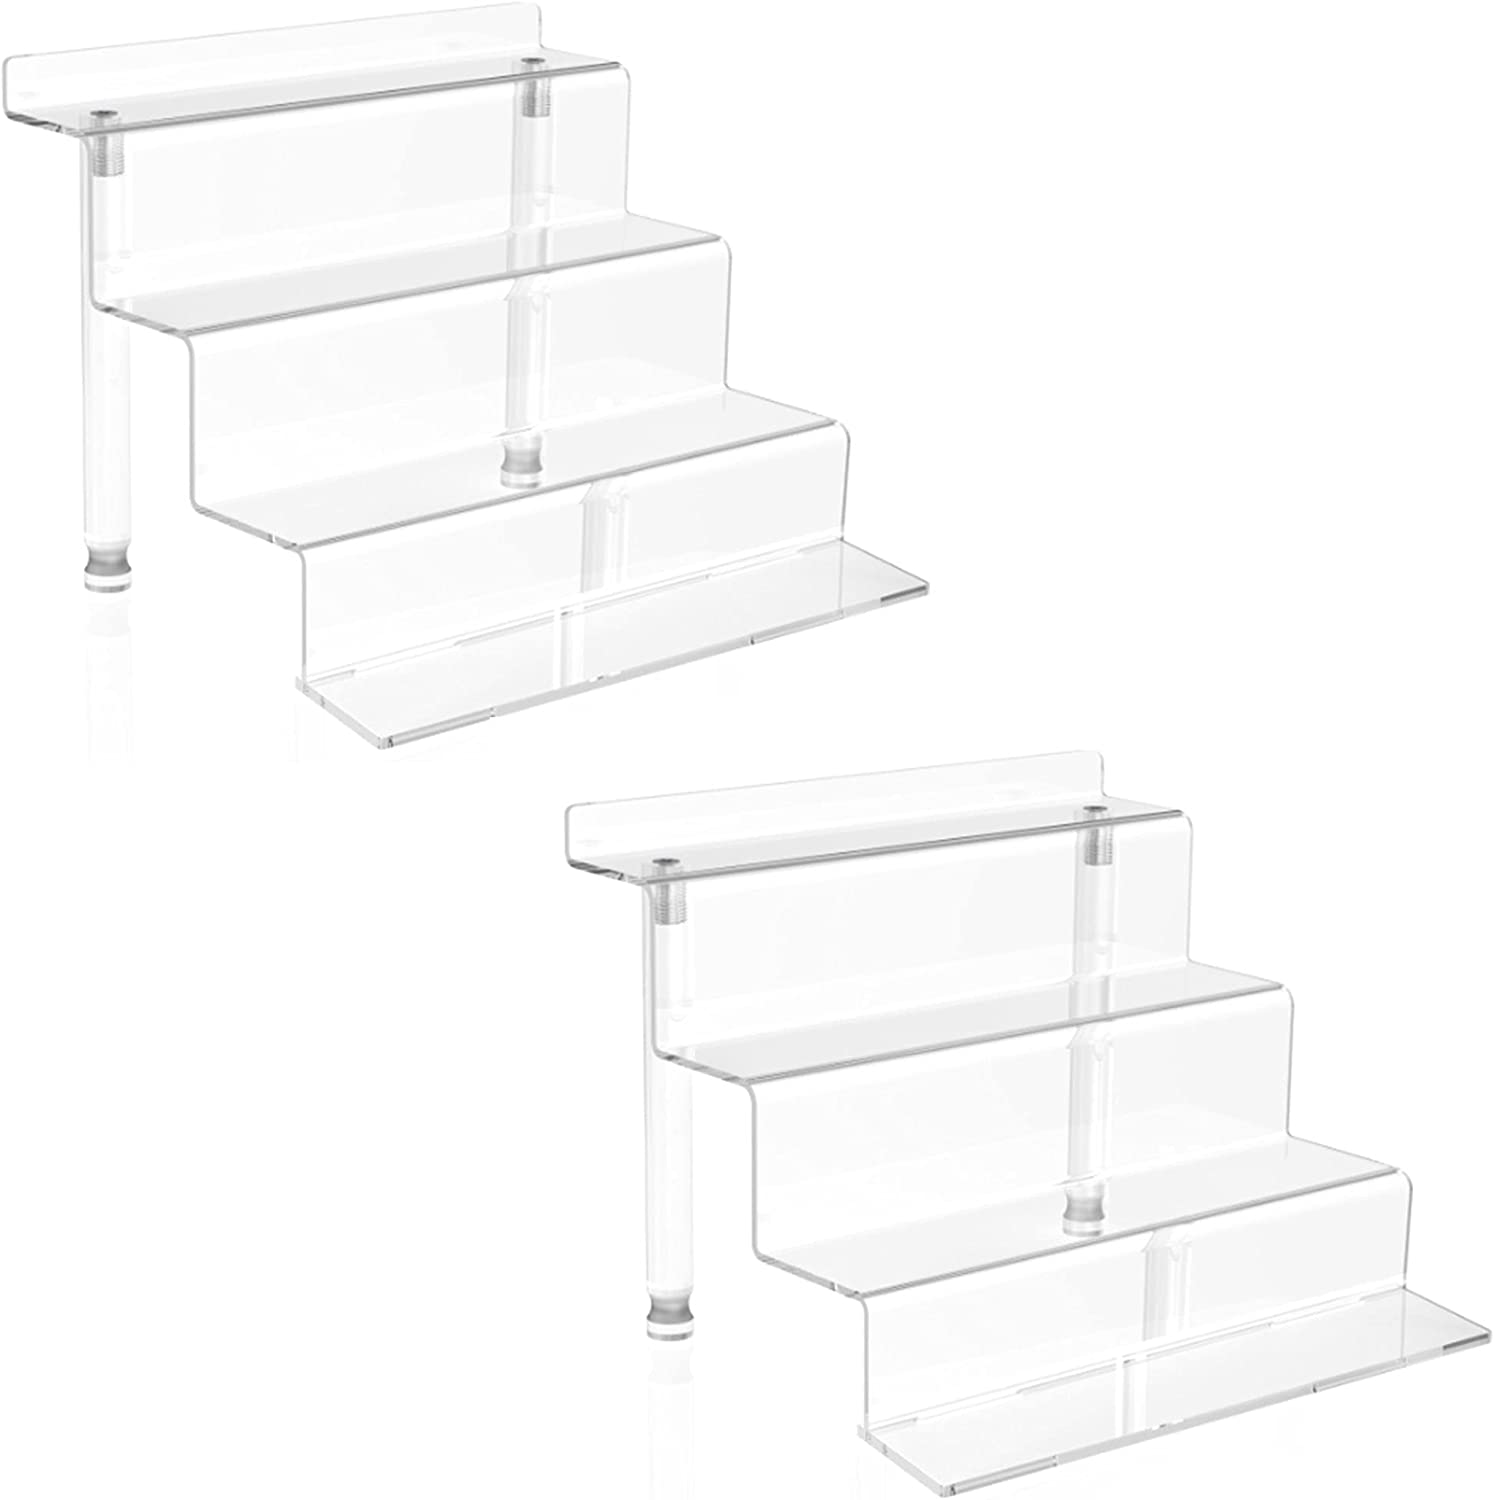 NEW before selling ☆ Phattopa Acrylic Stands Super intense SALE for Display Pack Shelf Riser 2 f